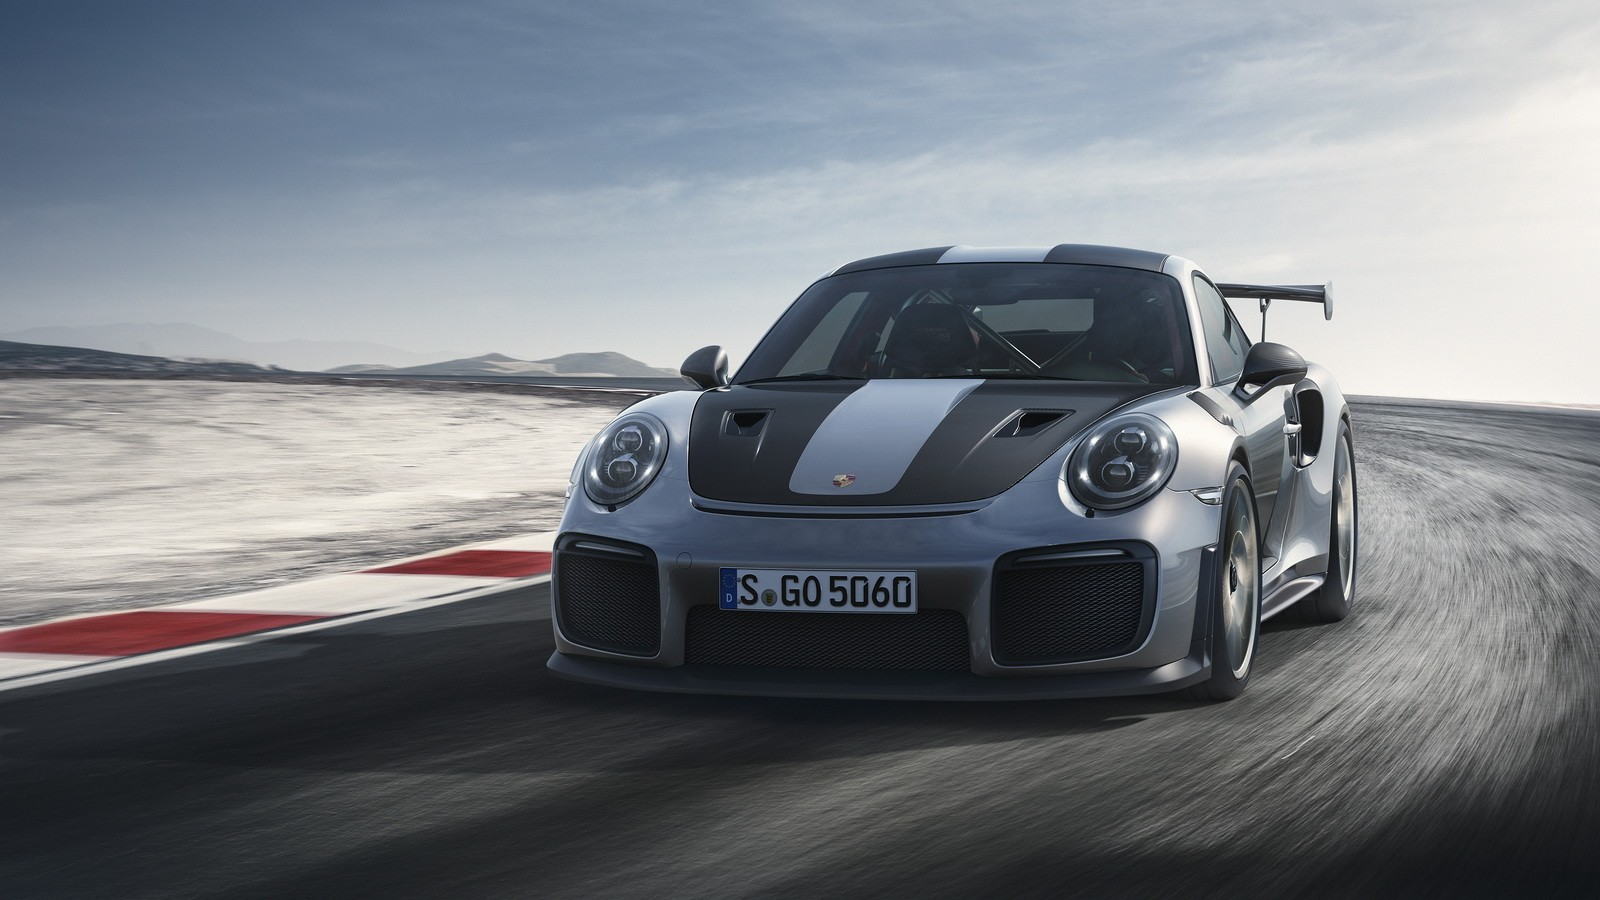 2018 porsche 911 gt2 rs launched at goodwood costs 304 584 with weissach pack autoevolution. Black Bedroom Furniture Sets. Home Design Ideas